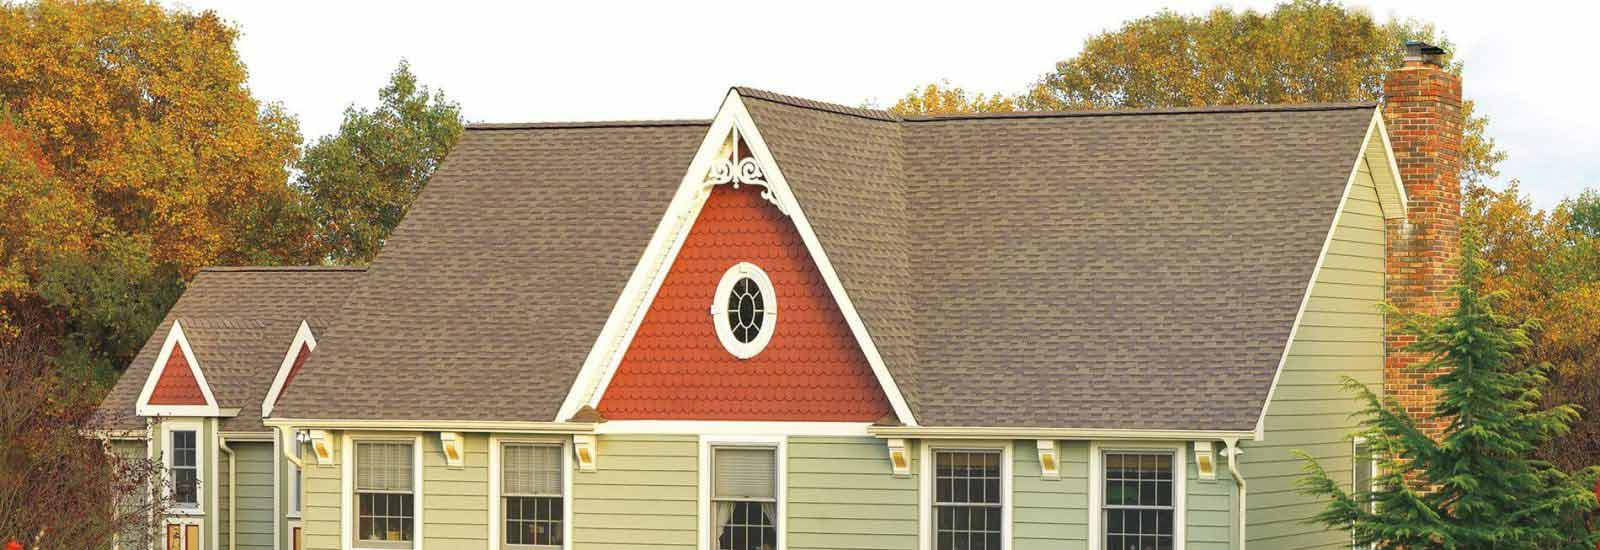 Residential Tile Roofing In Manchester NH